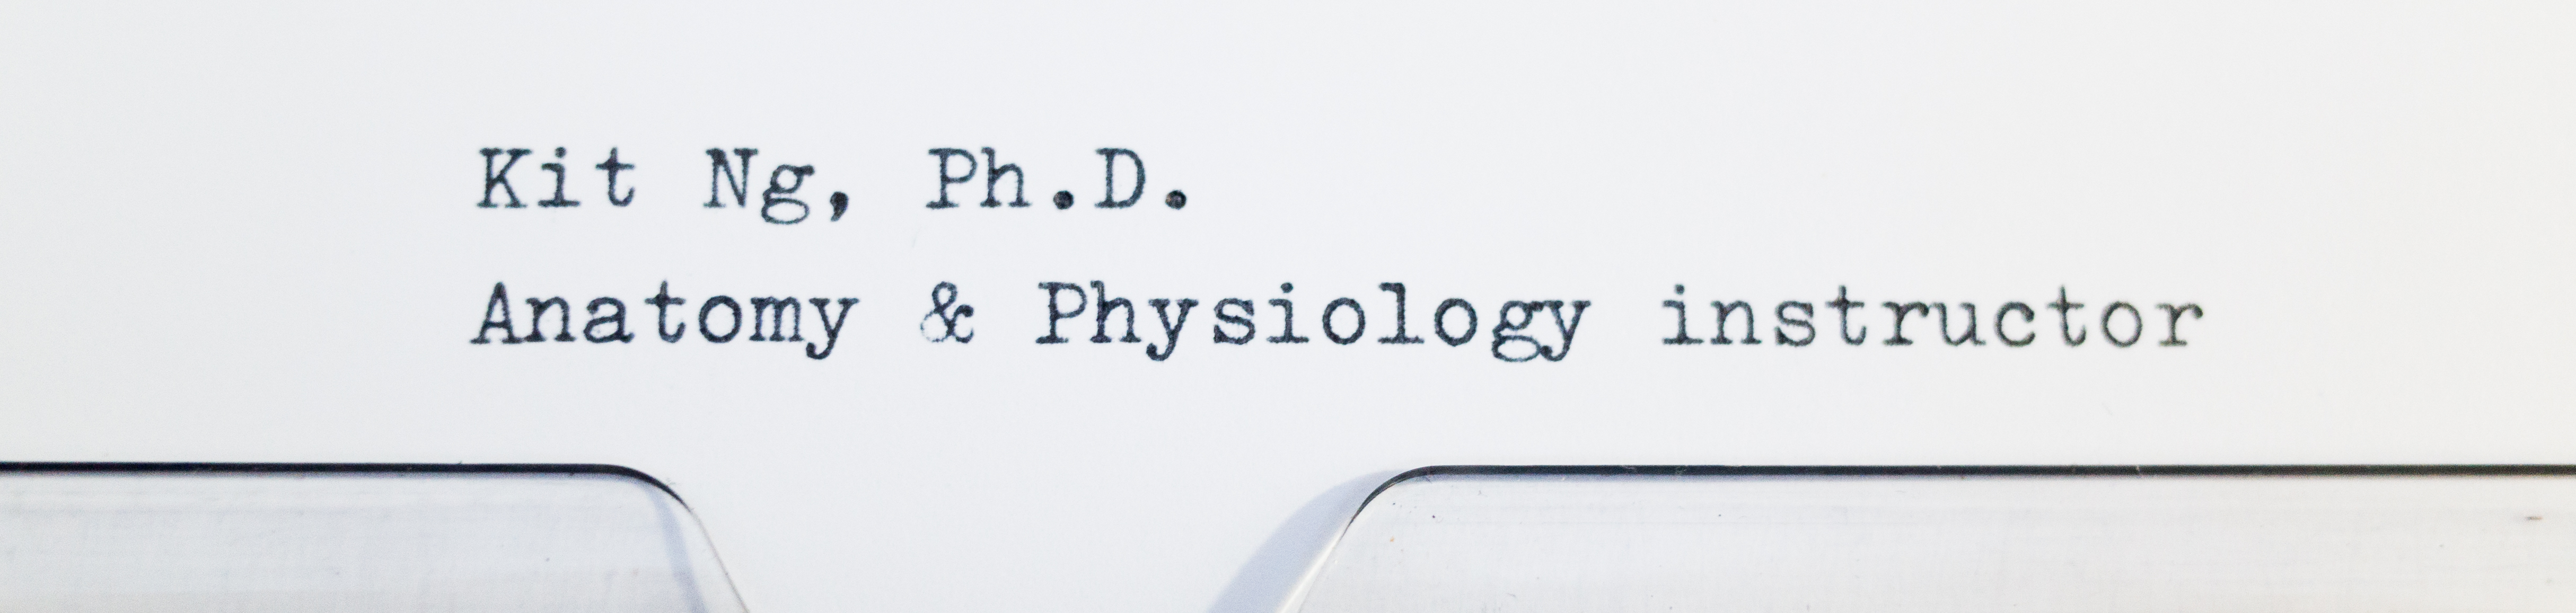 Kit Ng, Ph.D. – Anatomist, Physiologist, Lecturer